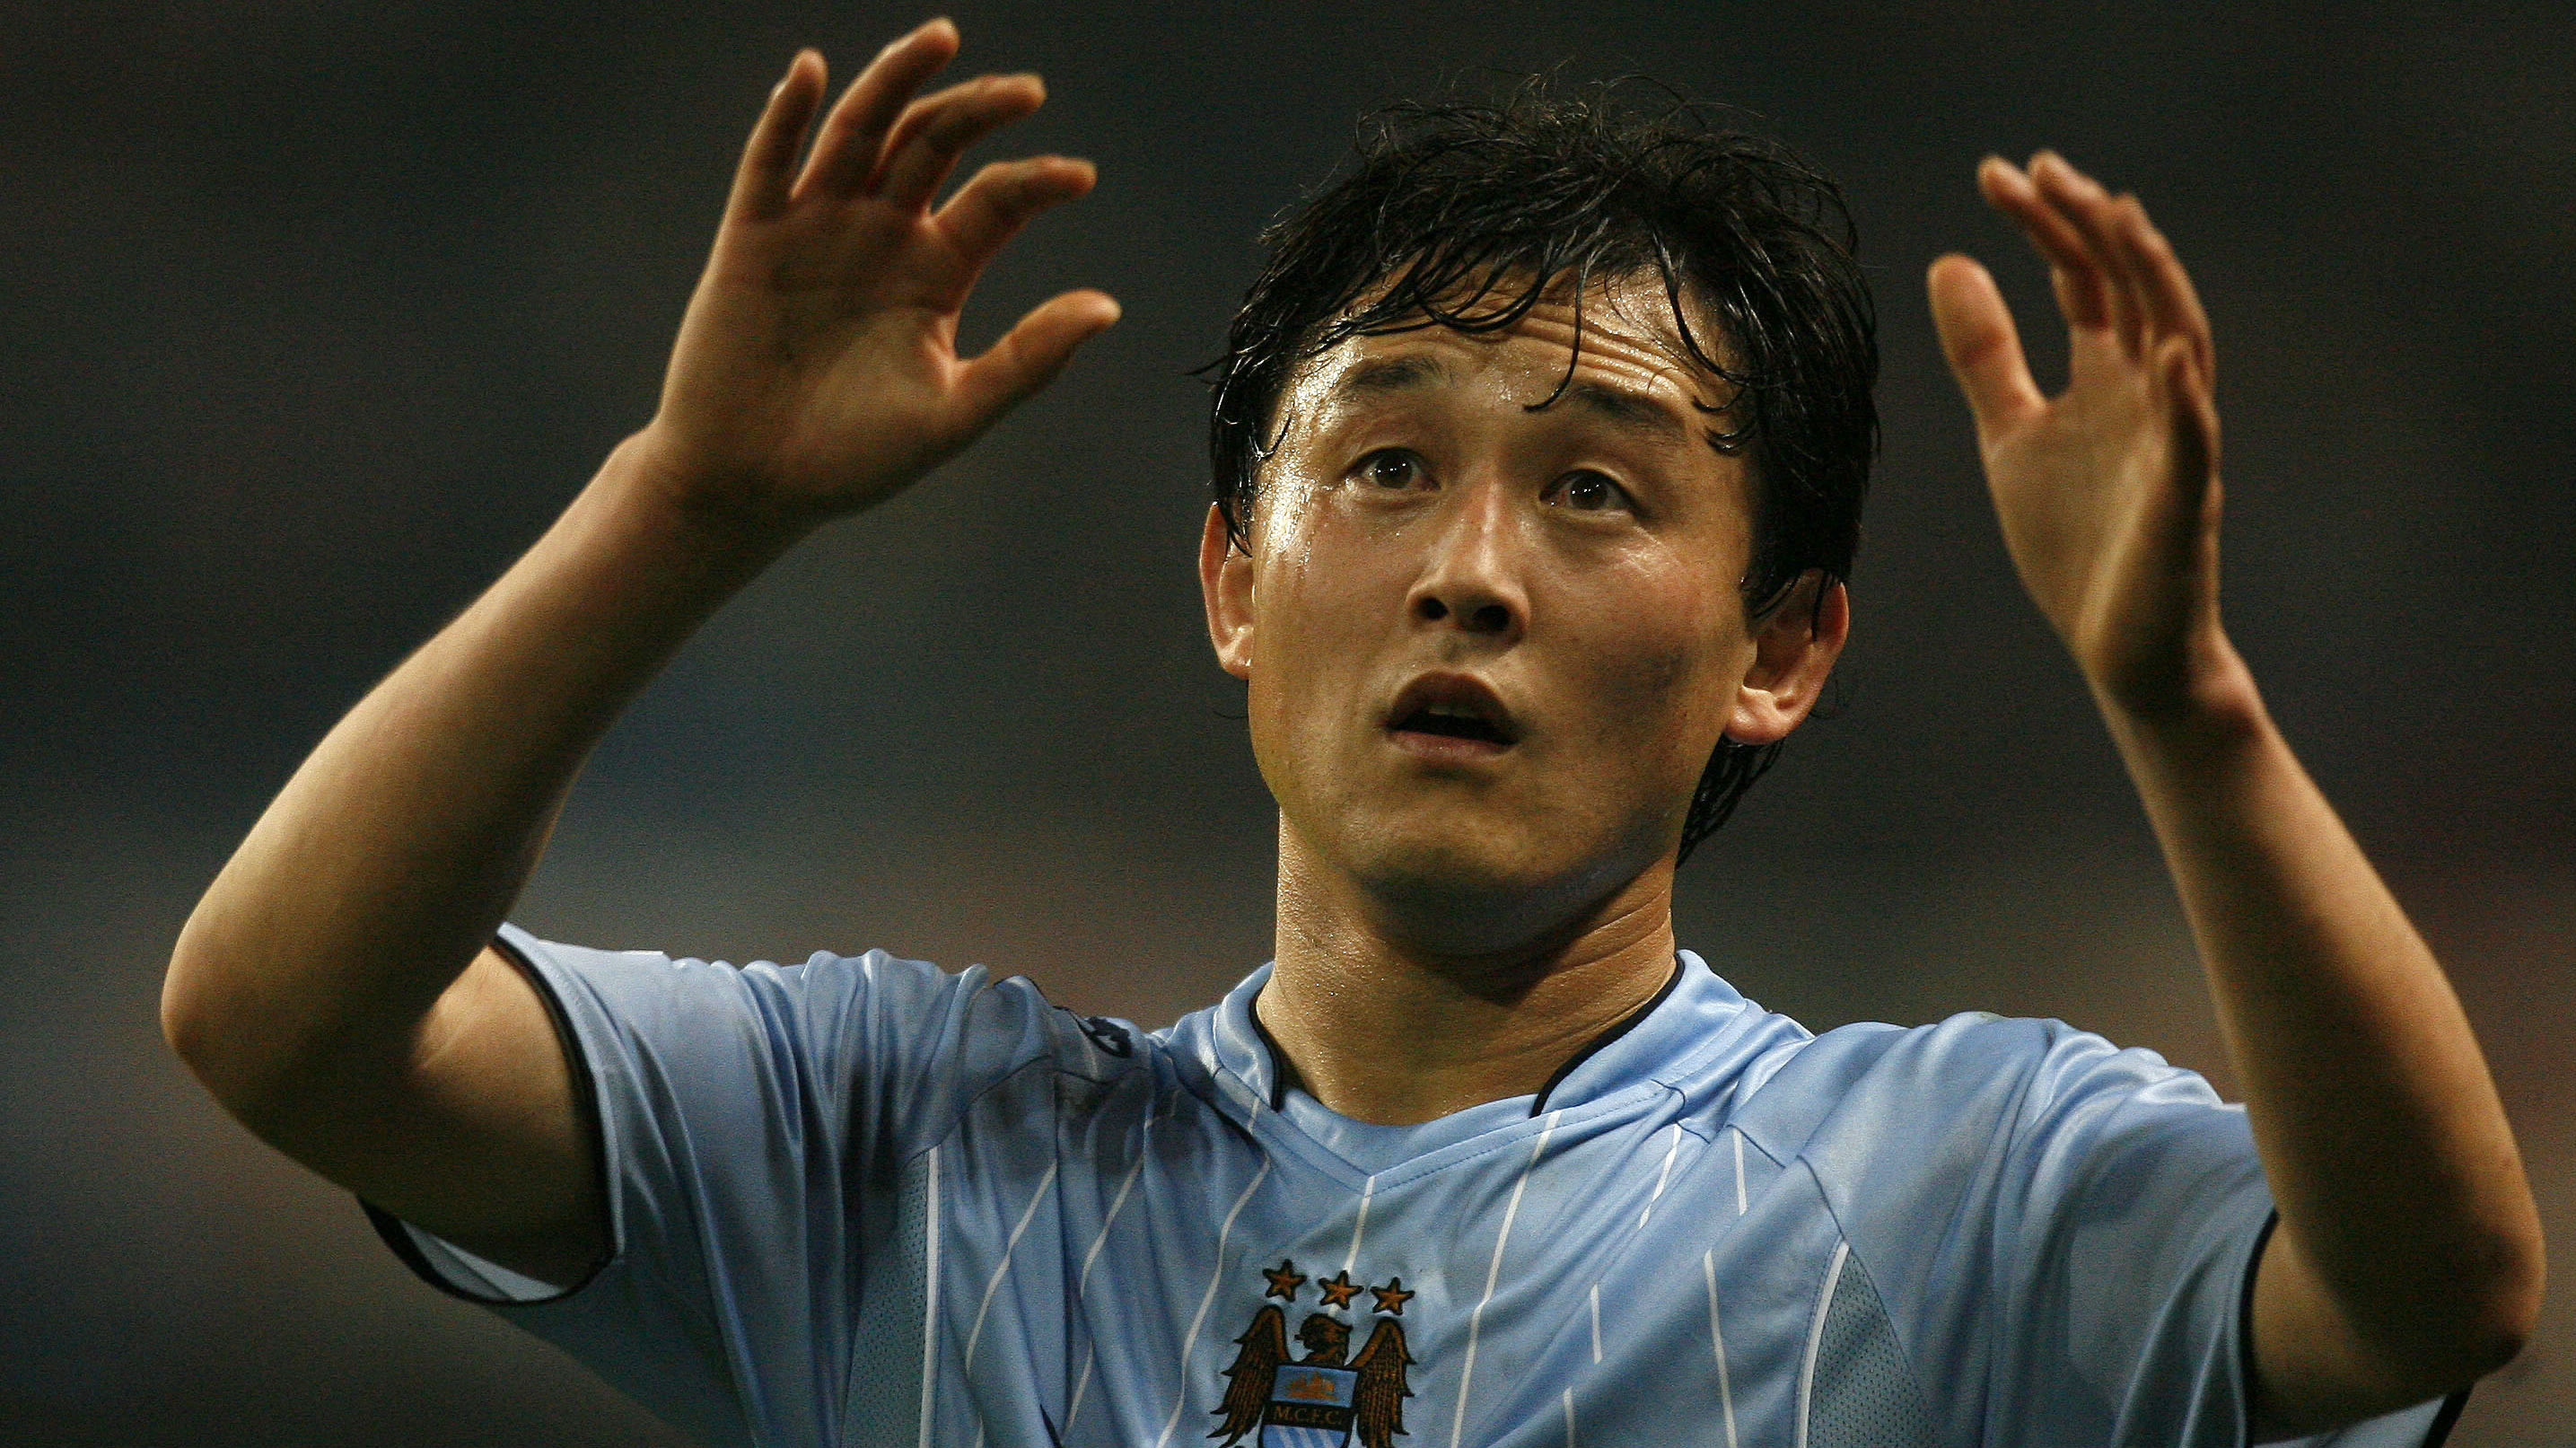 Manchester City's Sun Jihai gestures during their English Premier League soccer match against Sunderland at the City of Manchester Stadium in Manchester, northern England, November 5, 2007.